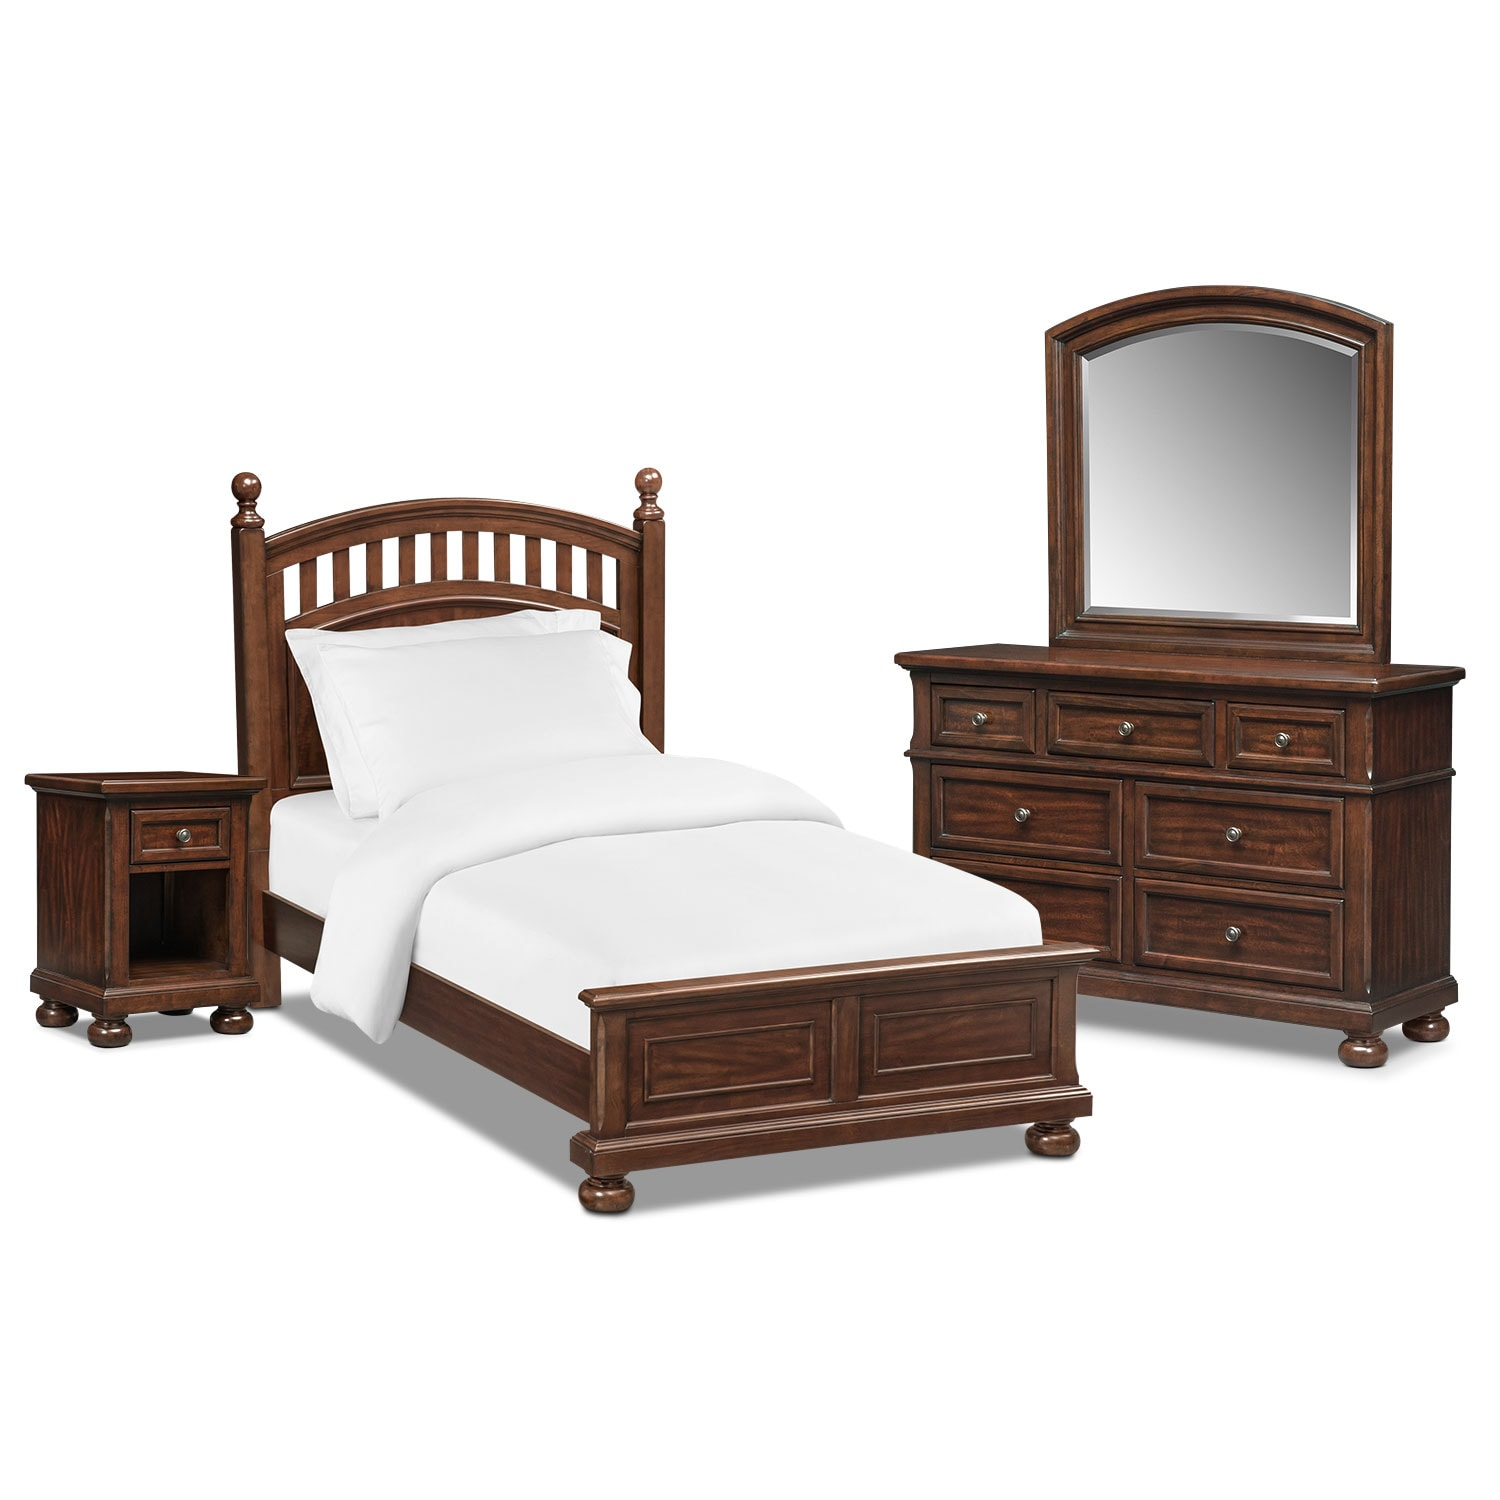 Bedroom Furniture - Hanover Youth 6-Piece Full Poster Bedroom Set - Cherry